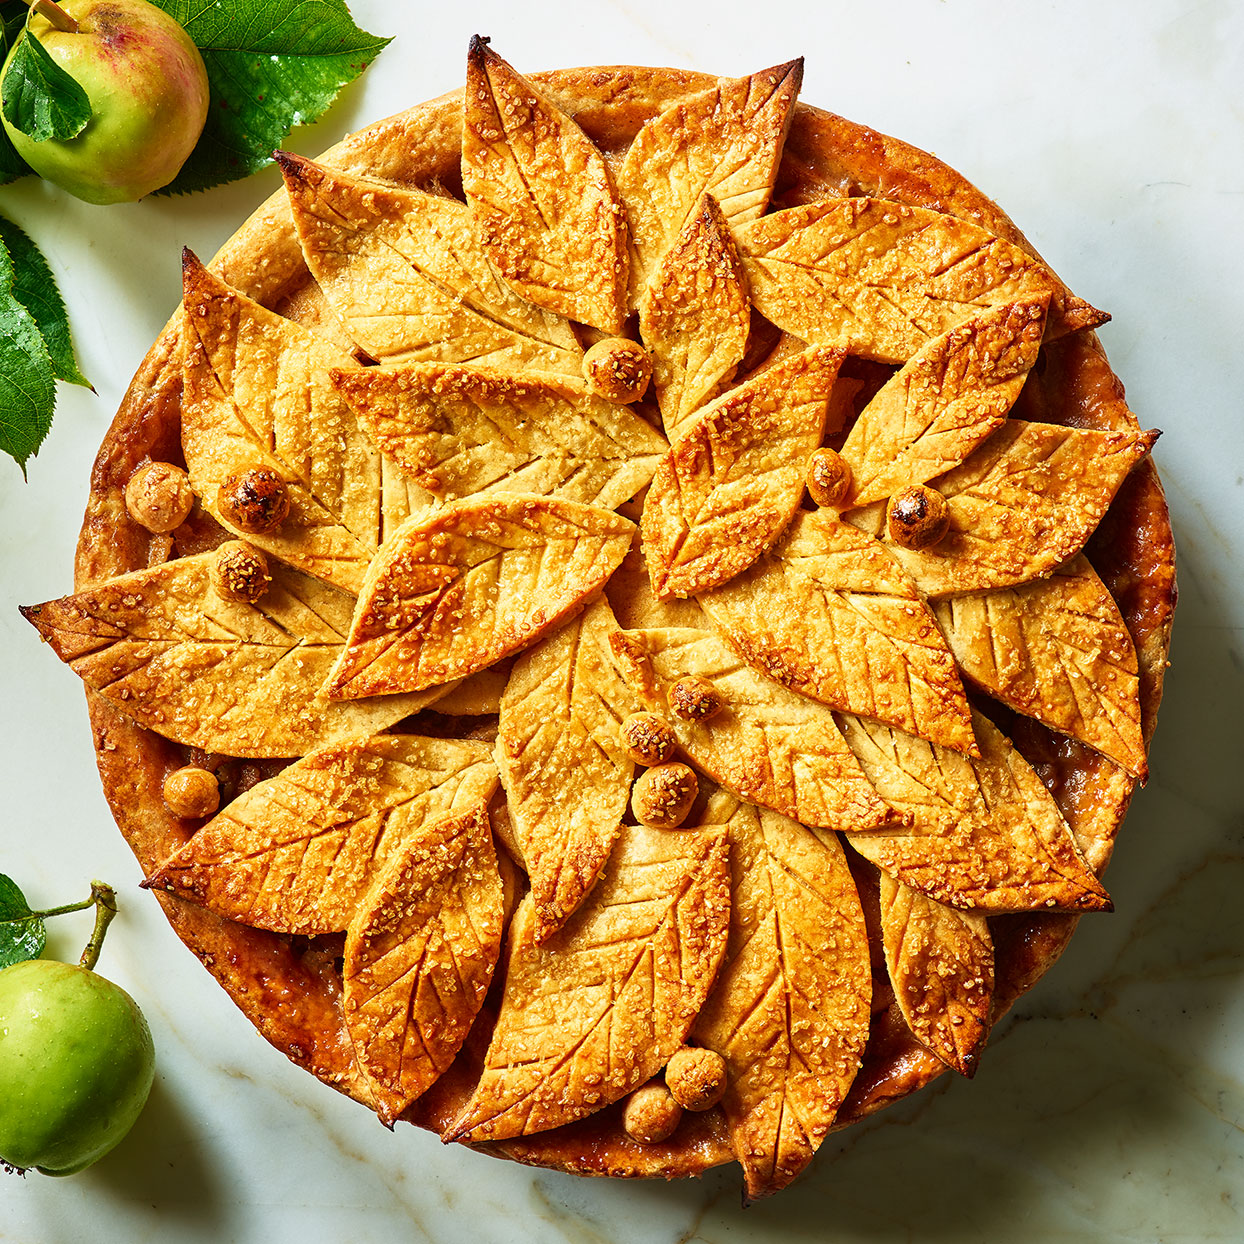 This homemade apple pie recipe has a simple and classic flavor, with fresh apples, spices and butter that's been sizzled until it's brown and nutty. The top crust is where you have the opportunity to add a touch of pizazz. Here we suggest cutting the dough into leaf shapes for an autumnal motif, but you could cut any shape you want. Source: EatingWell Magazine, November 2019